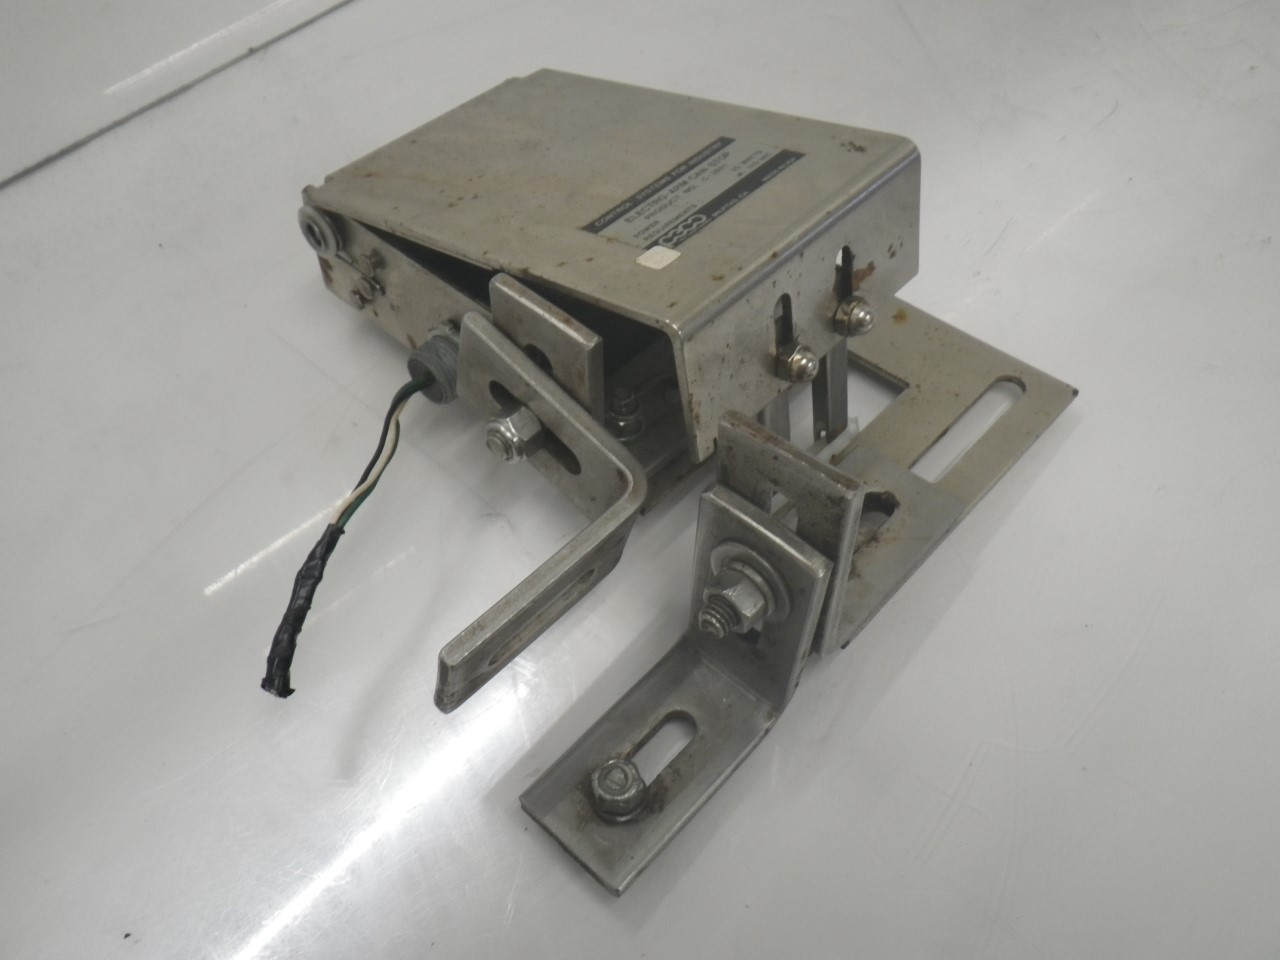 IMGP6937C-3801 C-3800A 3012Peco Electro-arm Controls forPackage Inspection(Used Tested) (3)